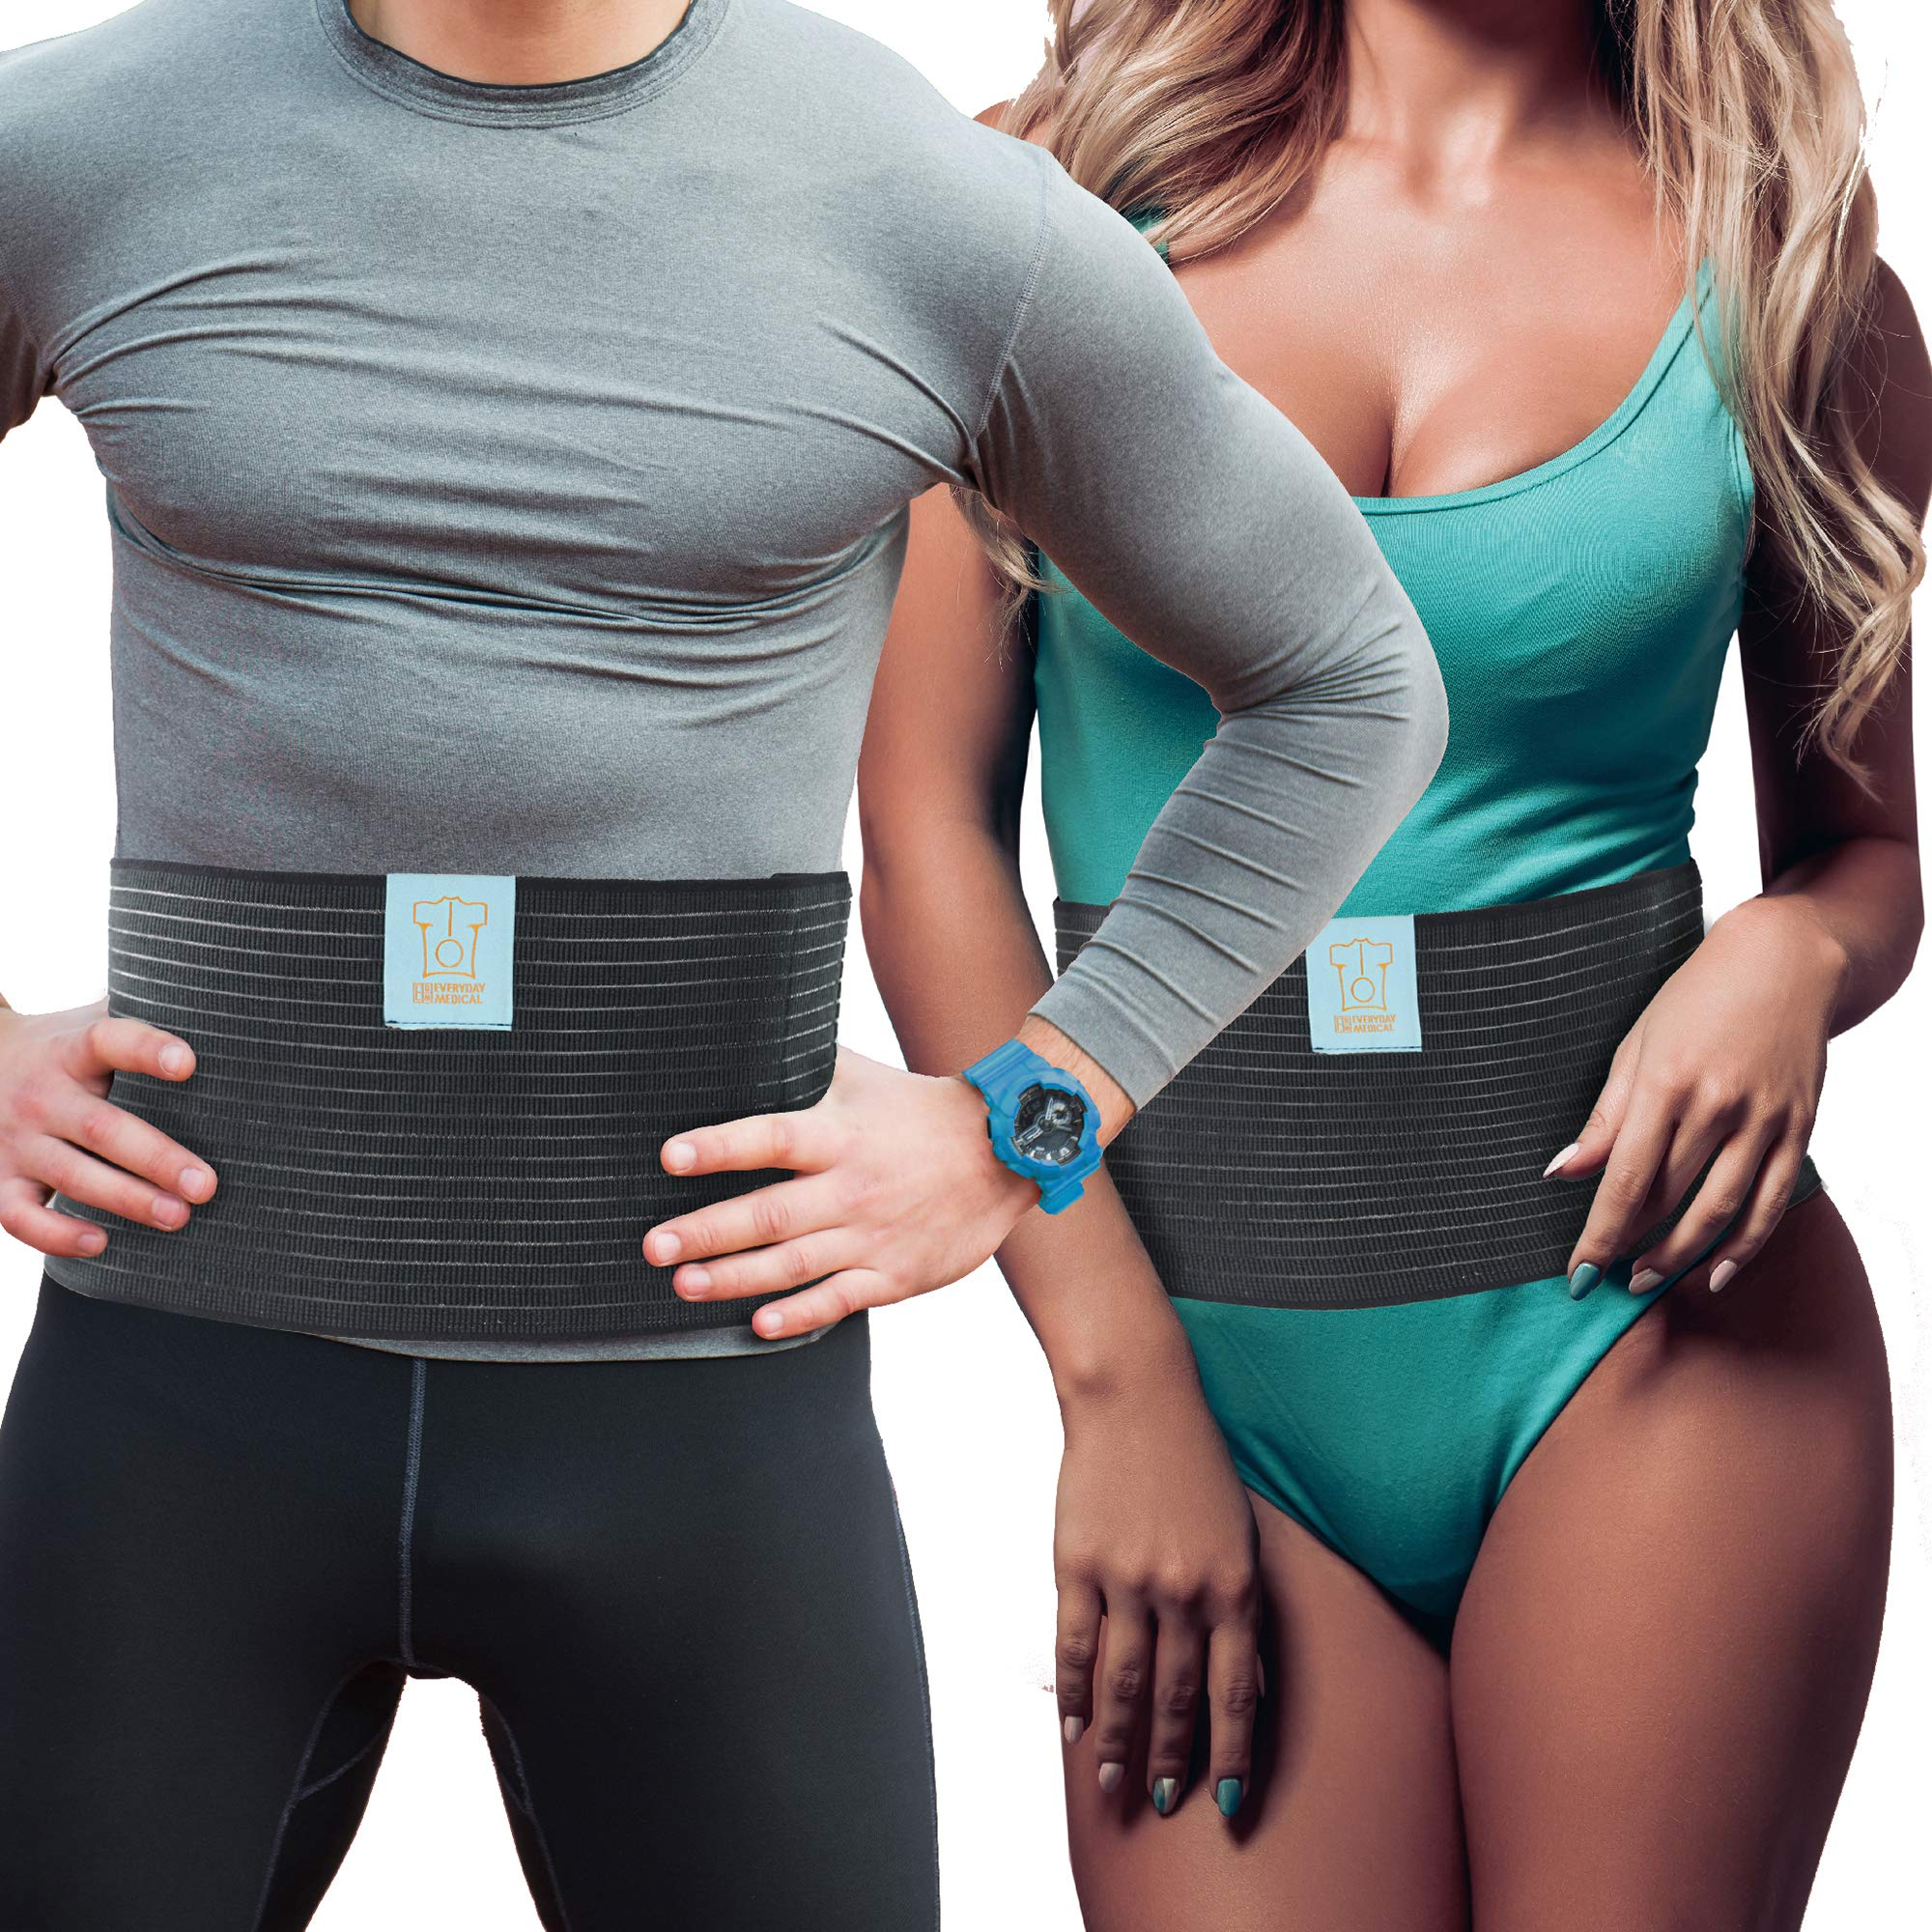 Everyday Medical Post Surgery Abdominal Binder for Men and Women - Medical Grade Stomach Compression Brace for Waist and Abdomen Surgeries Such as Gastric Bypass, Liposuction, C-Section, Tummy Tuck by Everyday Medical